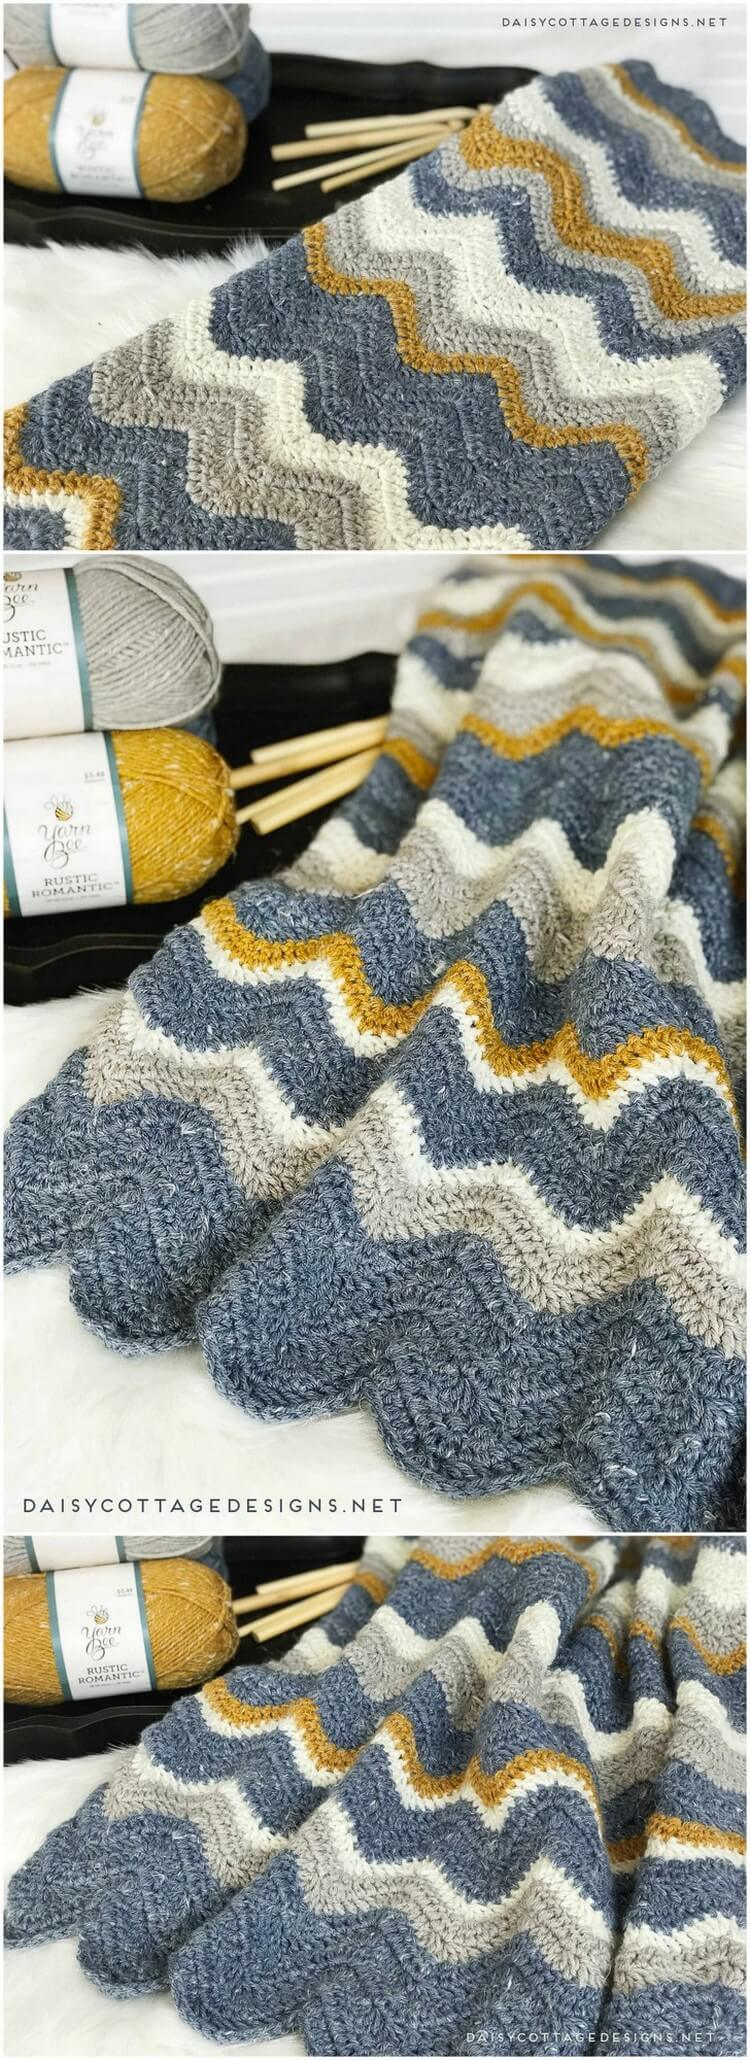 Crochet Blanket Pattern (46)